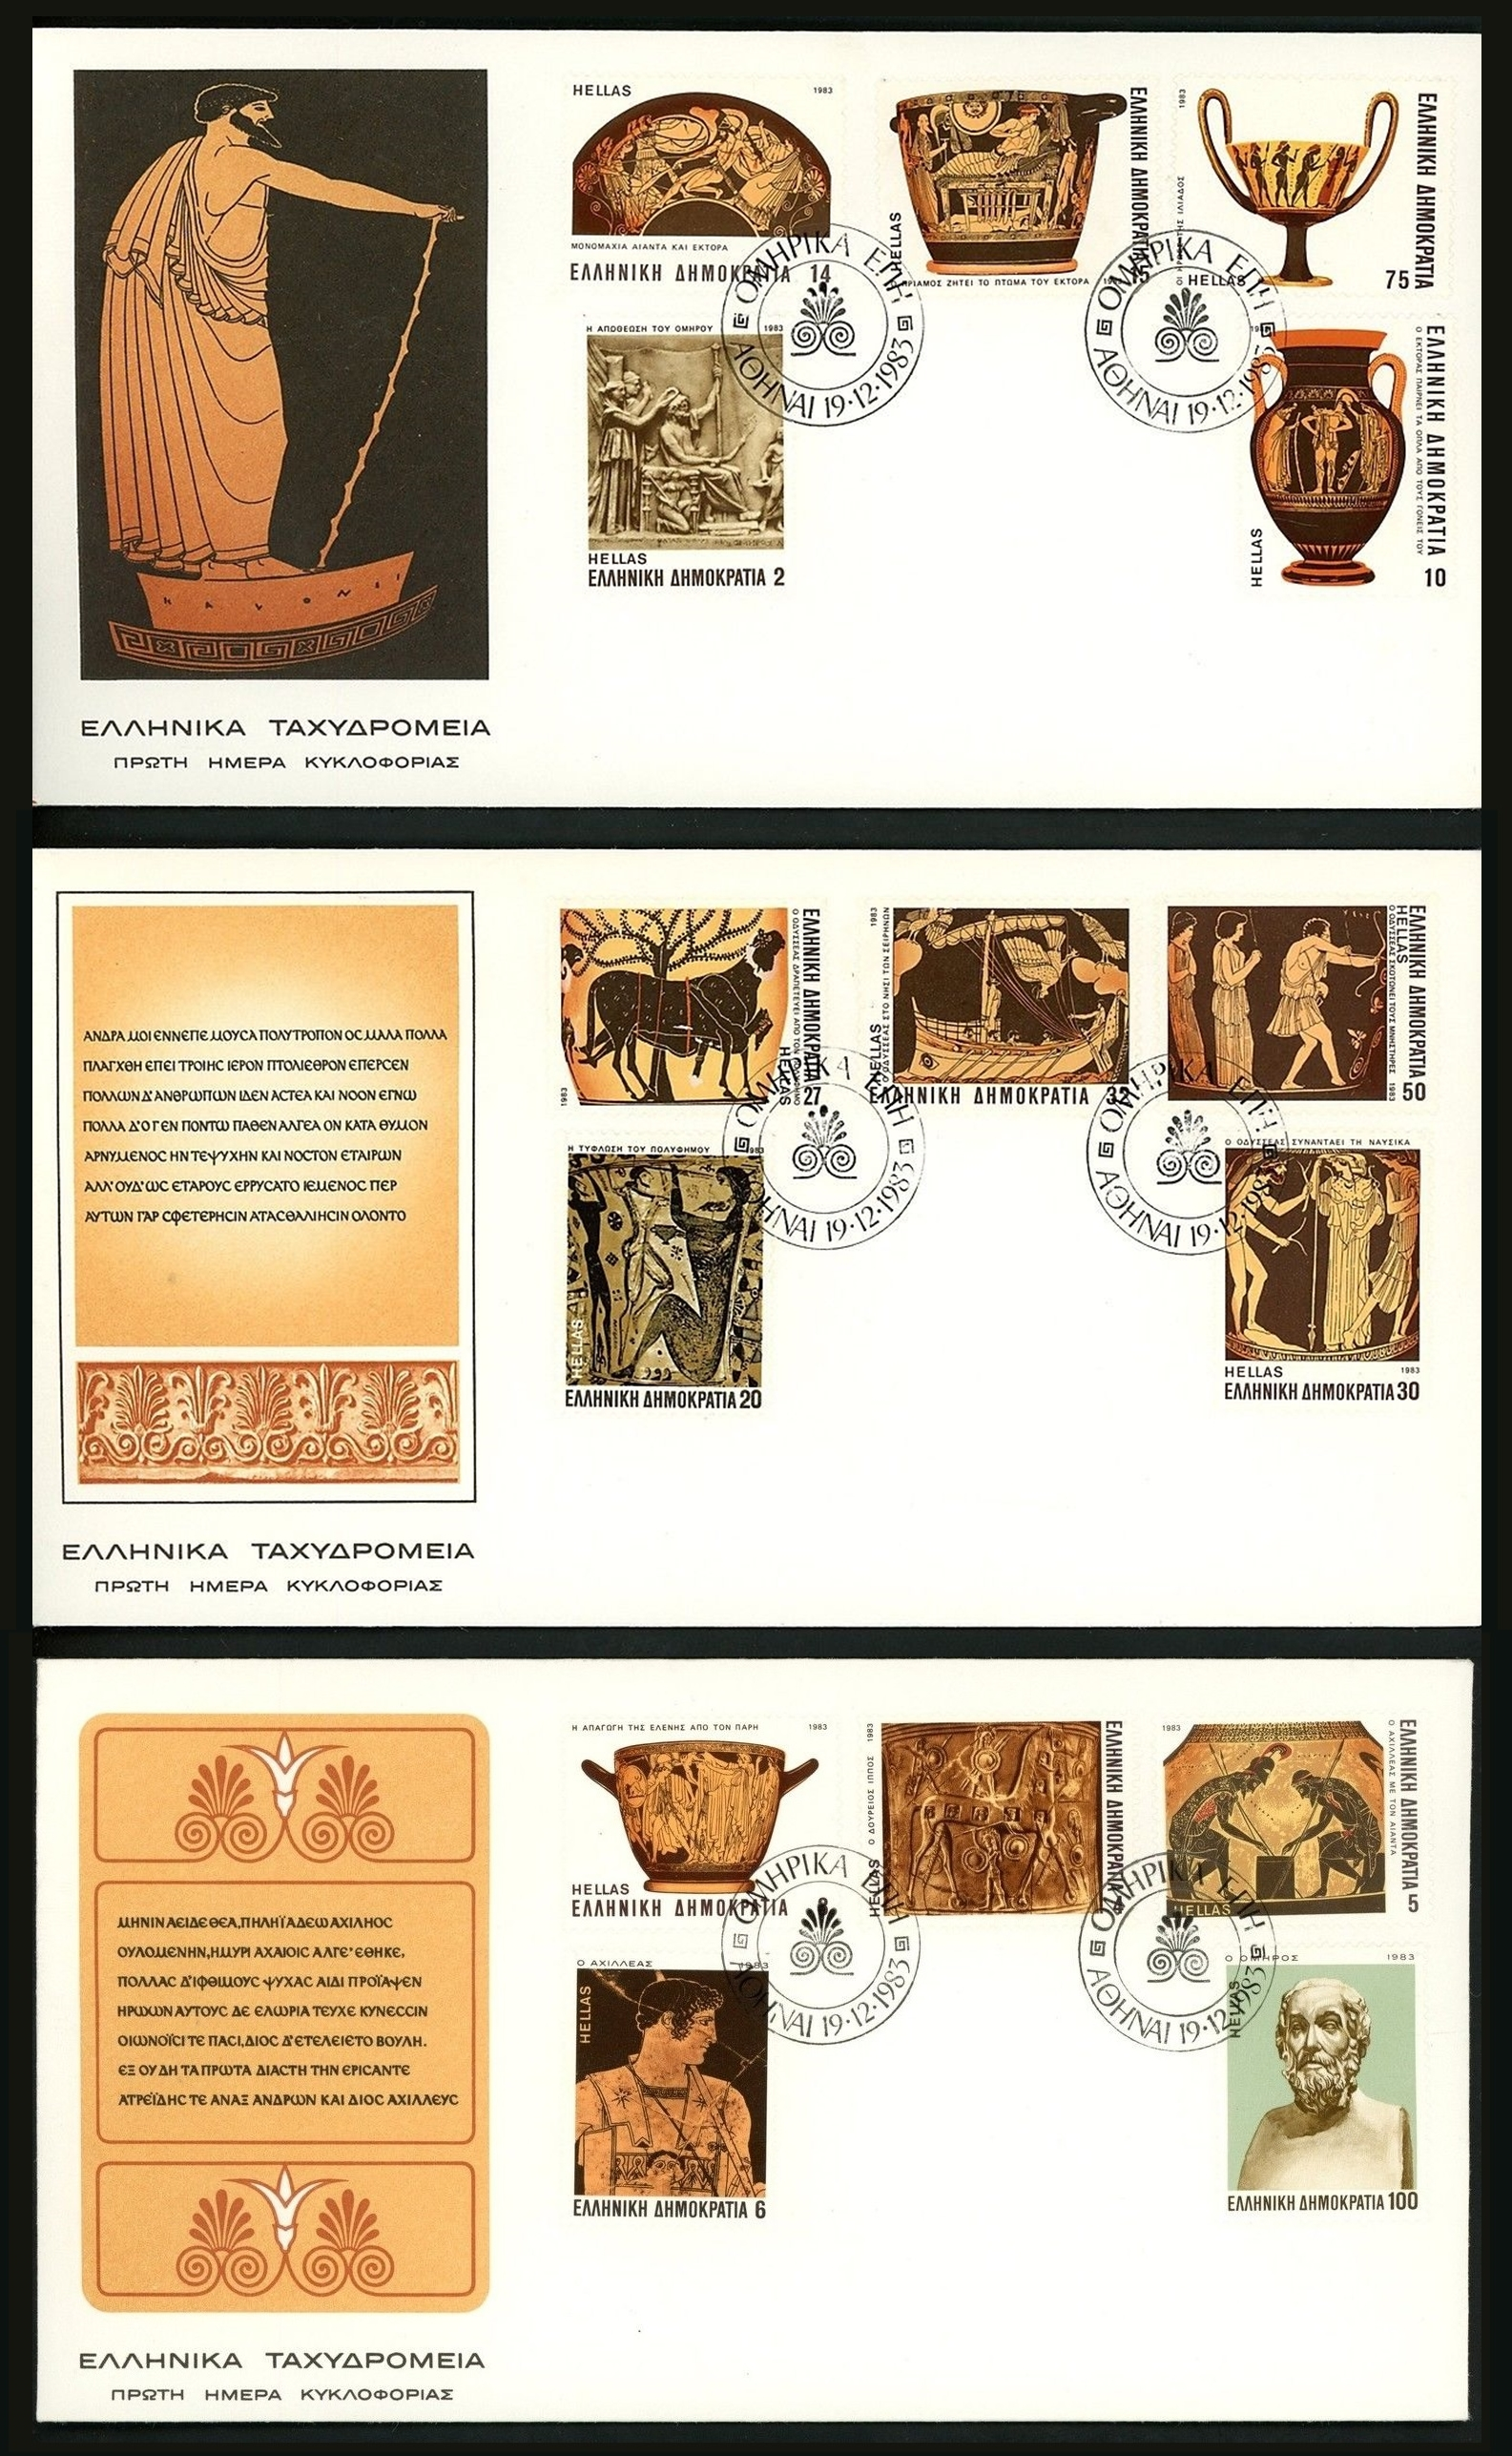 Greece - Scott #1472-1486 (1983) complete set on three first day covers (purchased using Buy It Now, eBay August 6, 2018).